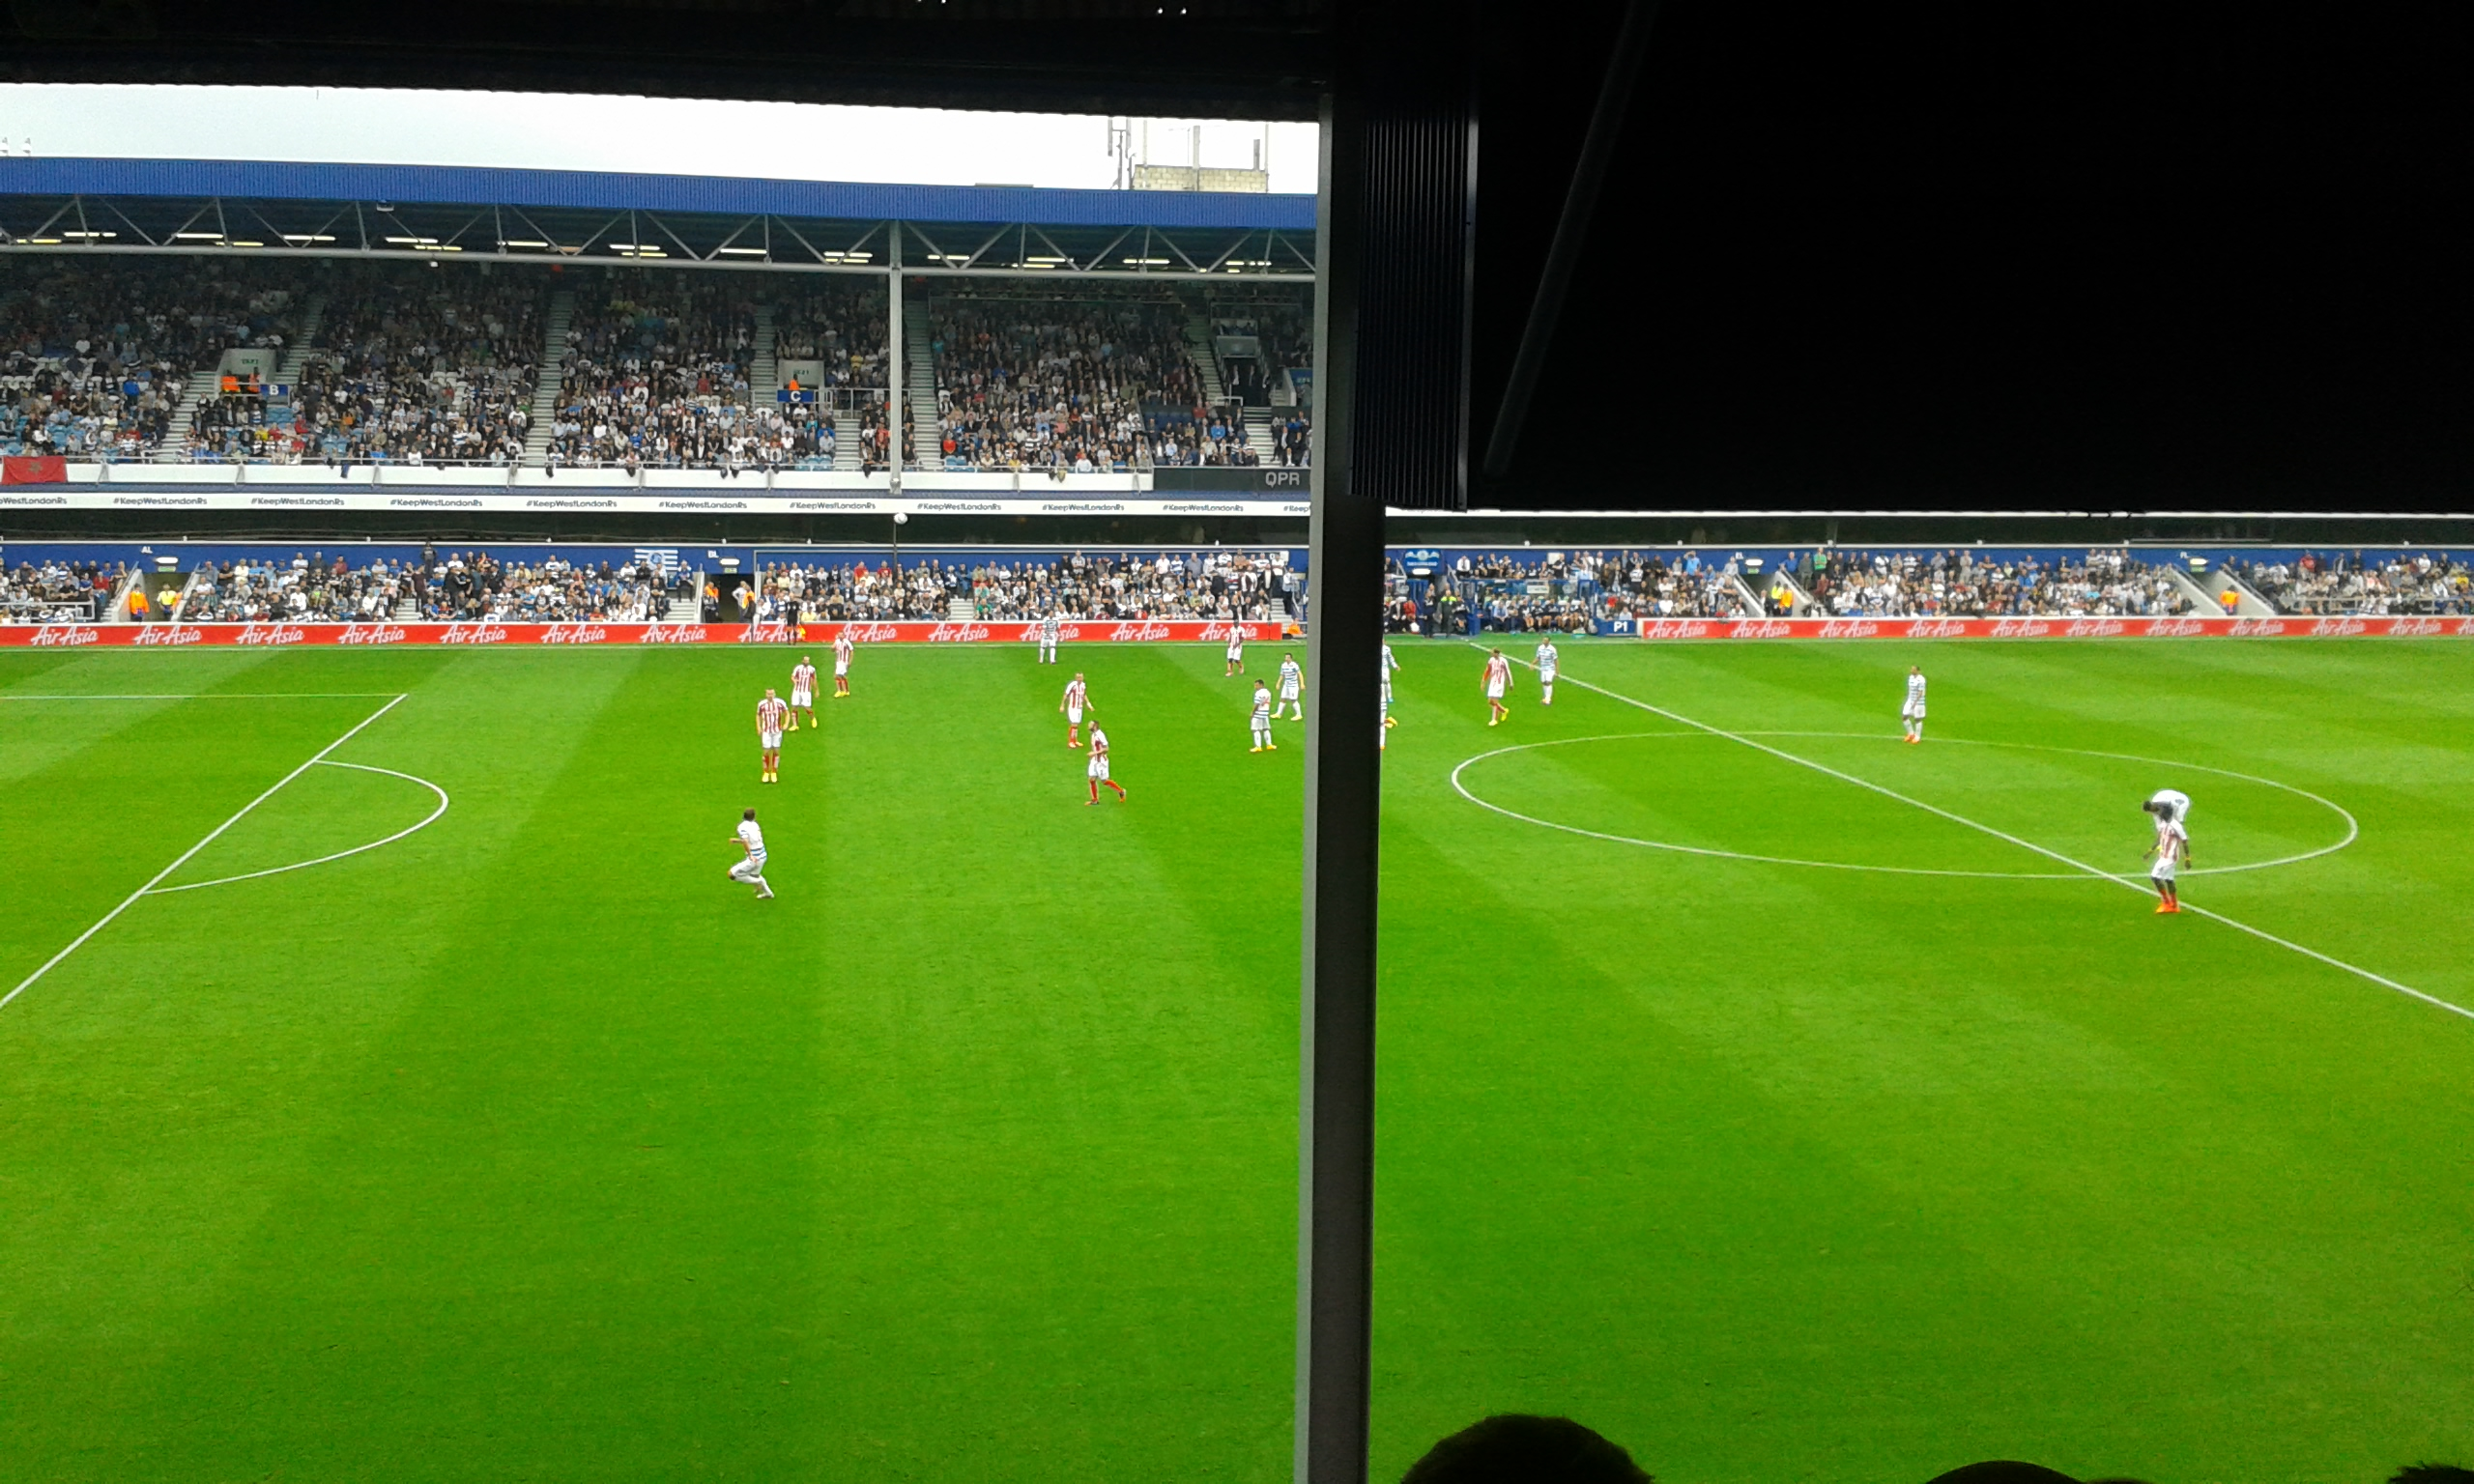 Queens Park Rangers - Stoke City, Loftus Road, Premier League, 20/09/2014